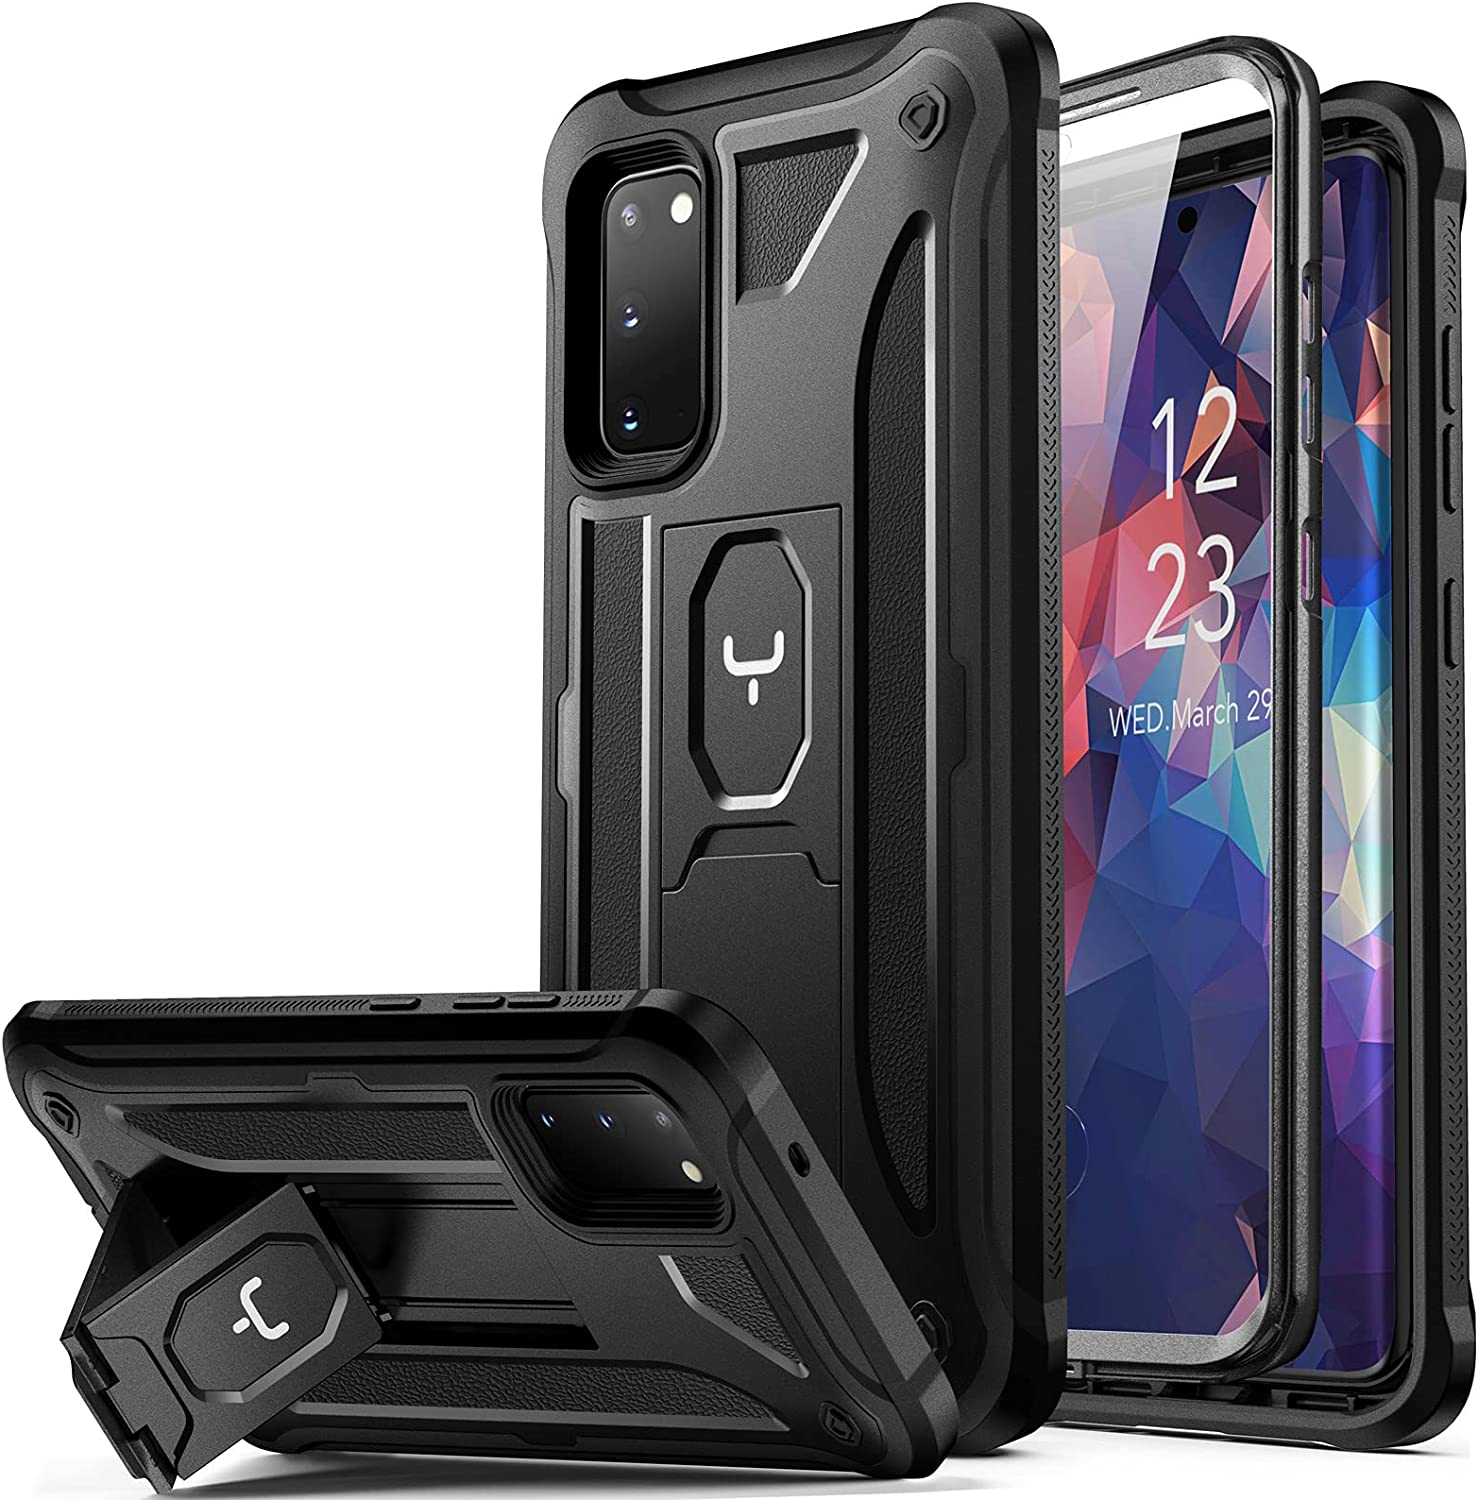 YOUMAKER Designed for Samsung Galaxy S20 5G Case with Built-in Screen Protector and Kickstand Shockproof Case Work with Fingerprint ID Military Grade Drop Tested Cover for S20 6.2 inch-Black